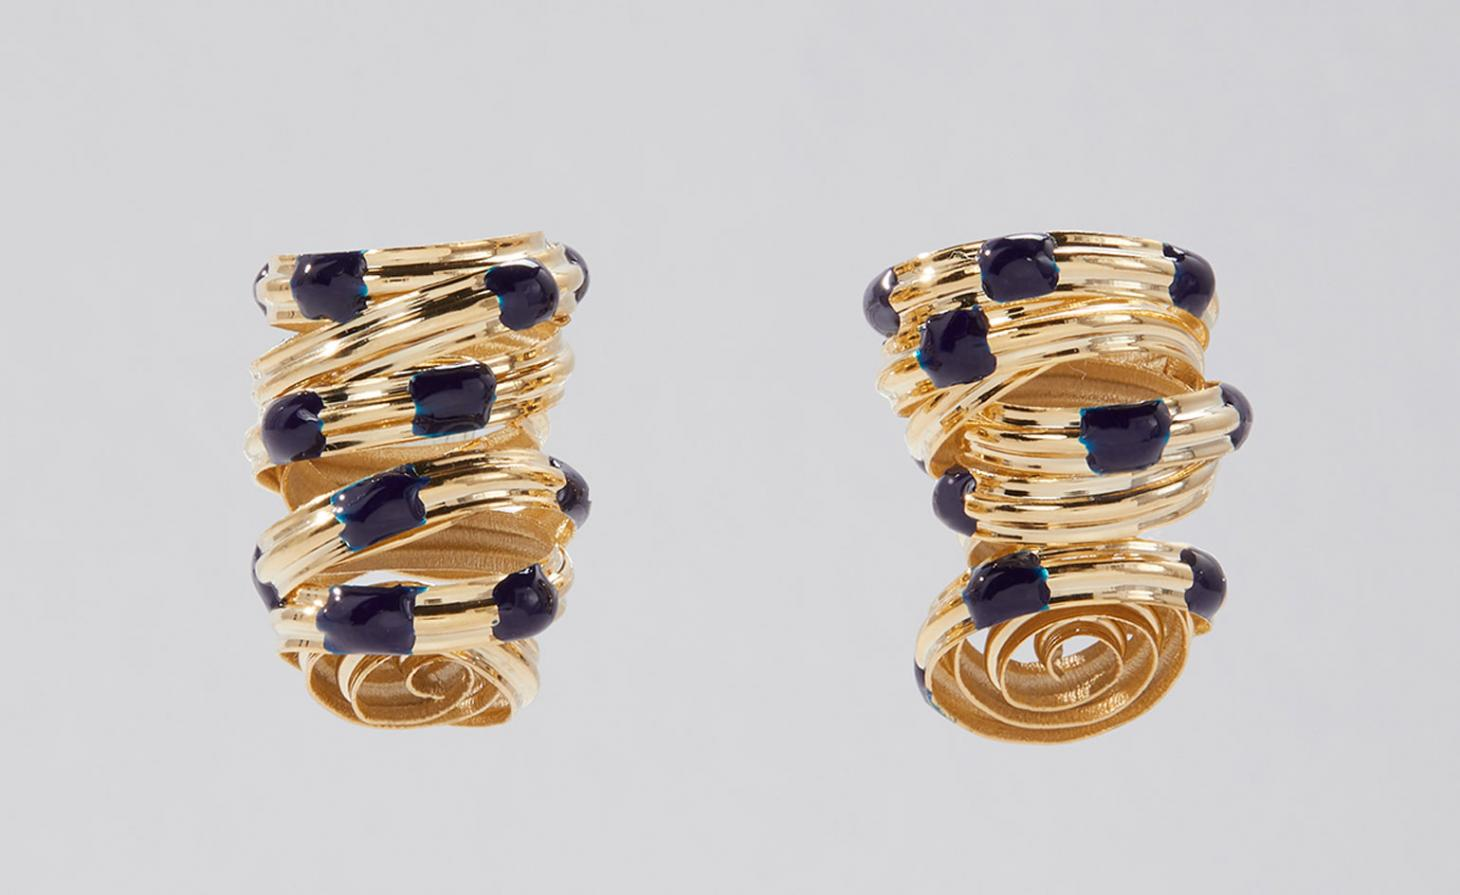 Gold-coated brass curly earrings with blue dots on